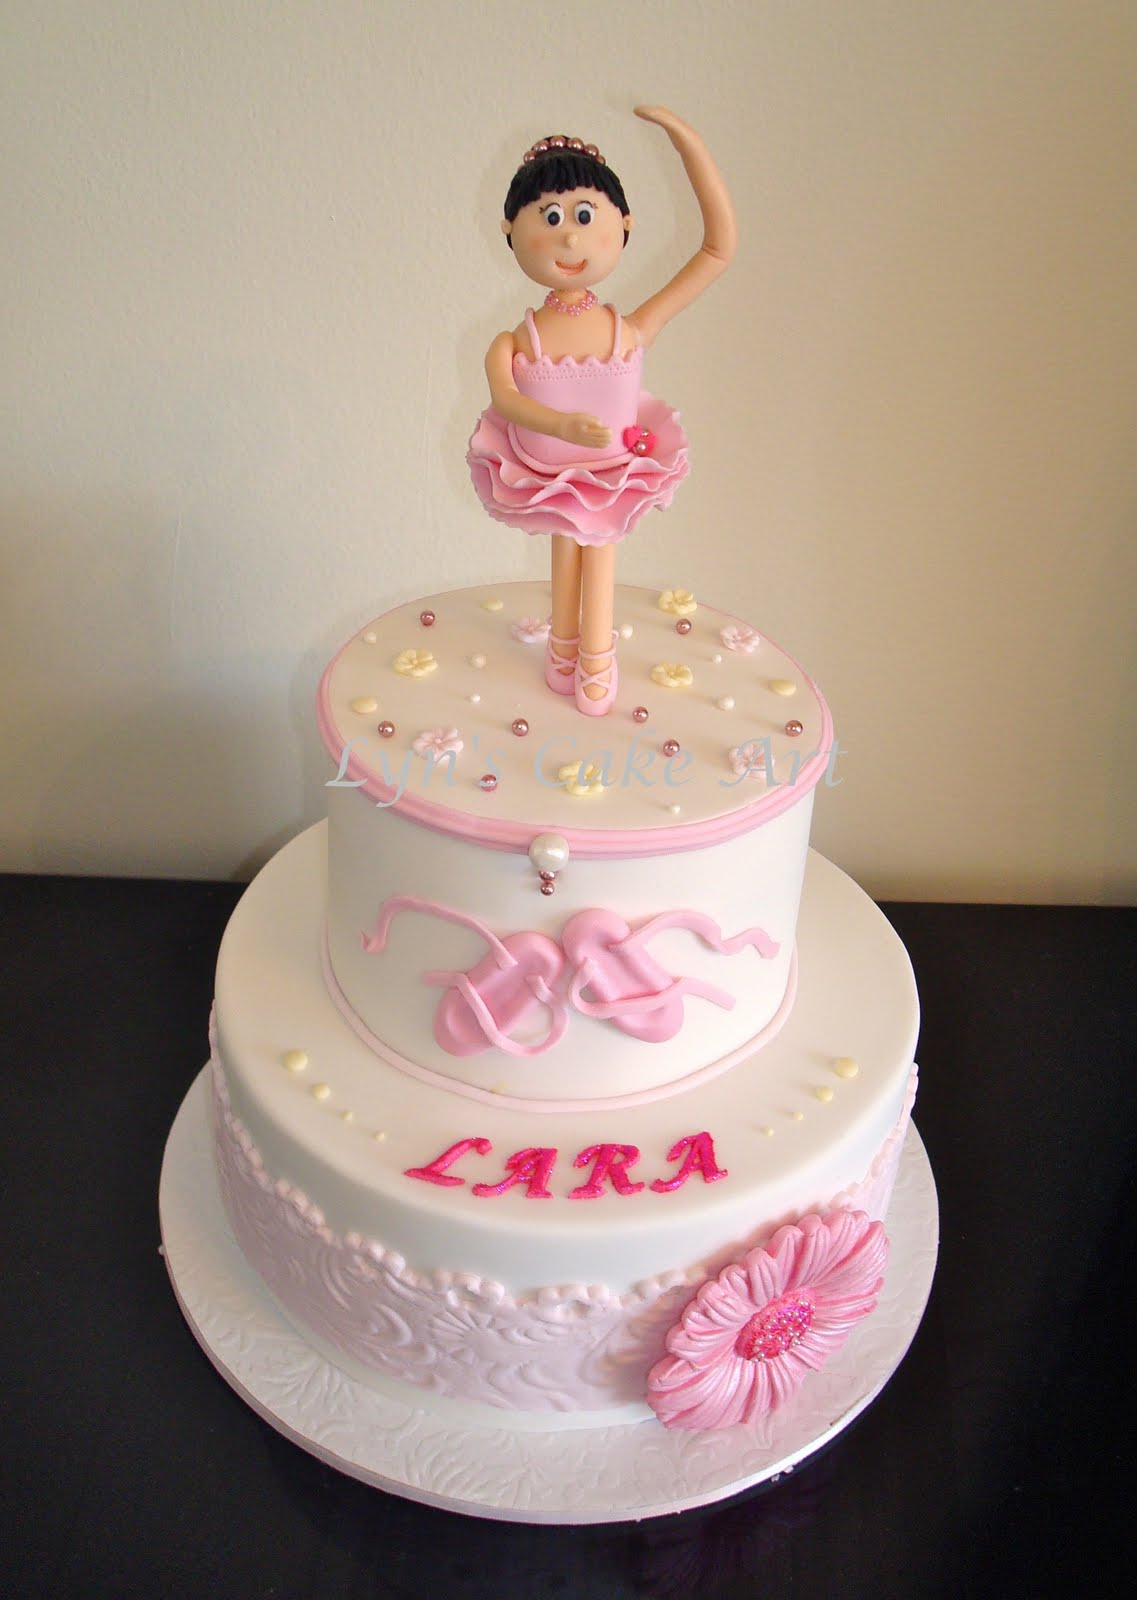 Cake Artist 4 You : Lyn s Cake Art: Ballerina Music Box